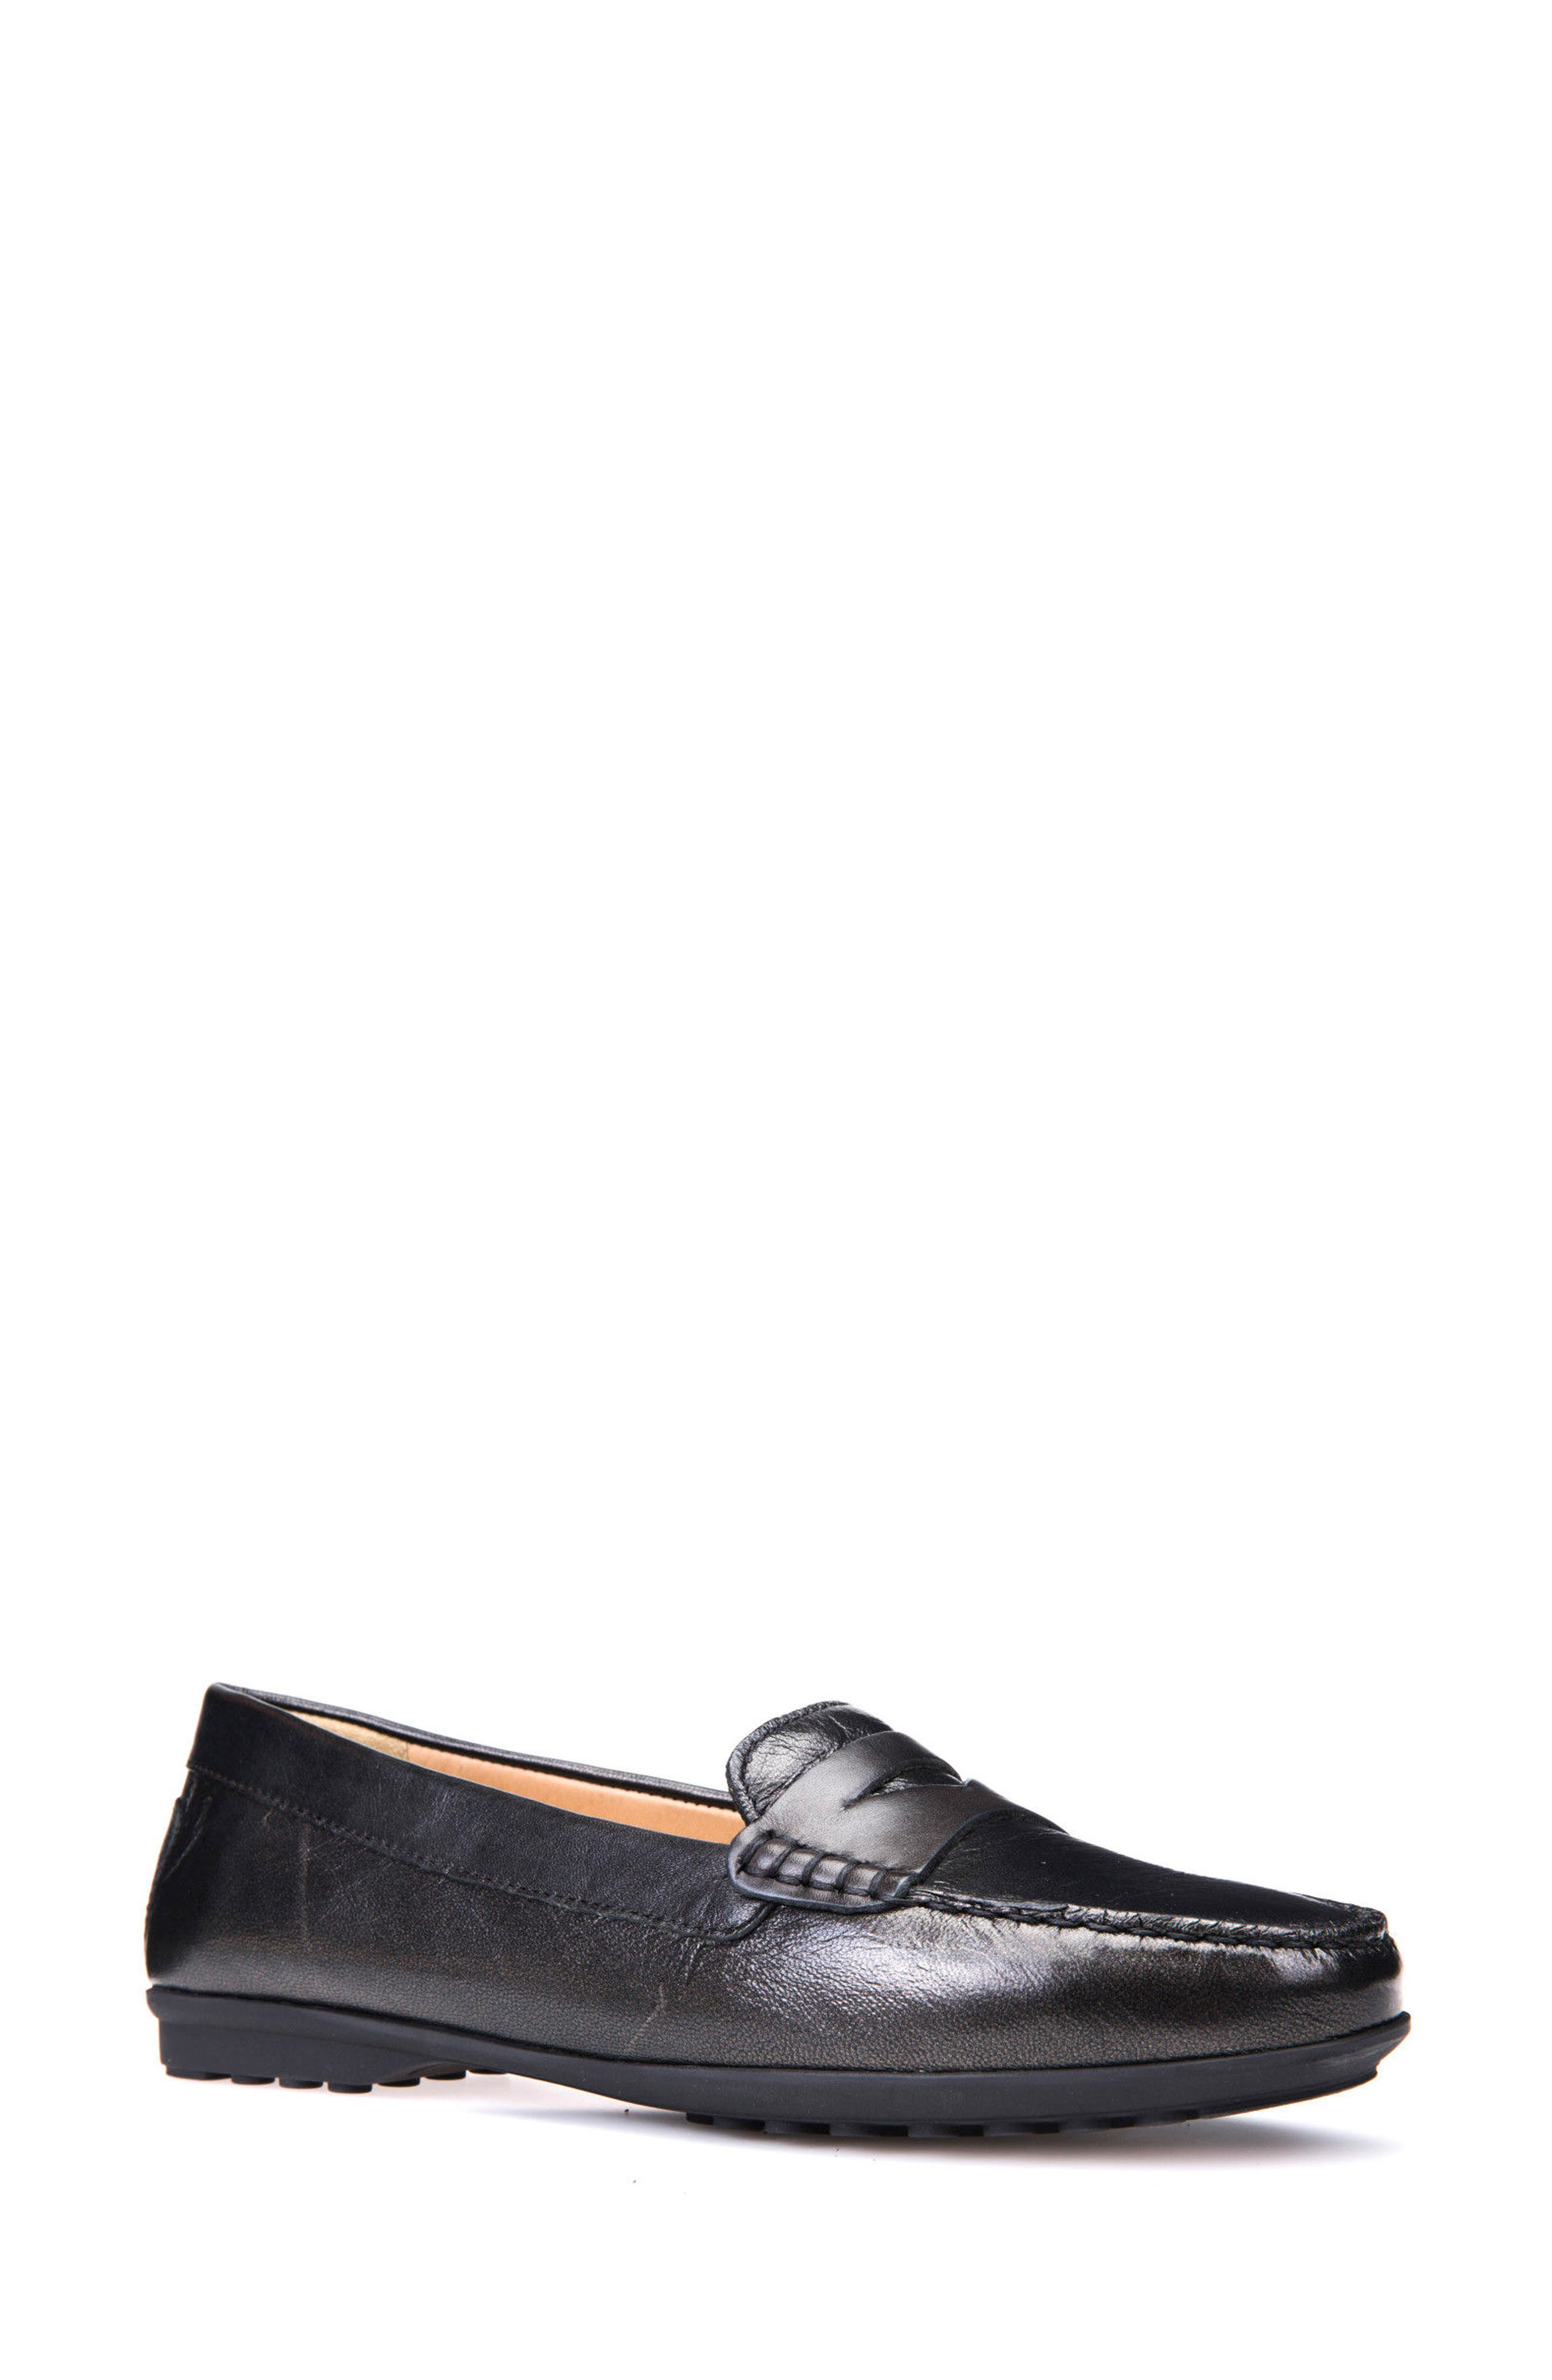 Elidia 5 Penny Loafer,                             Main thumbnail 1, color,                             030